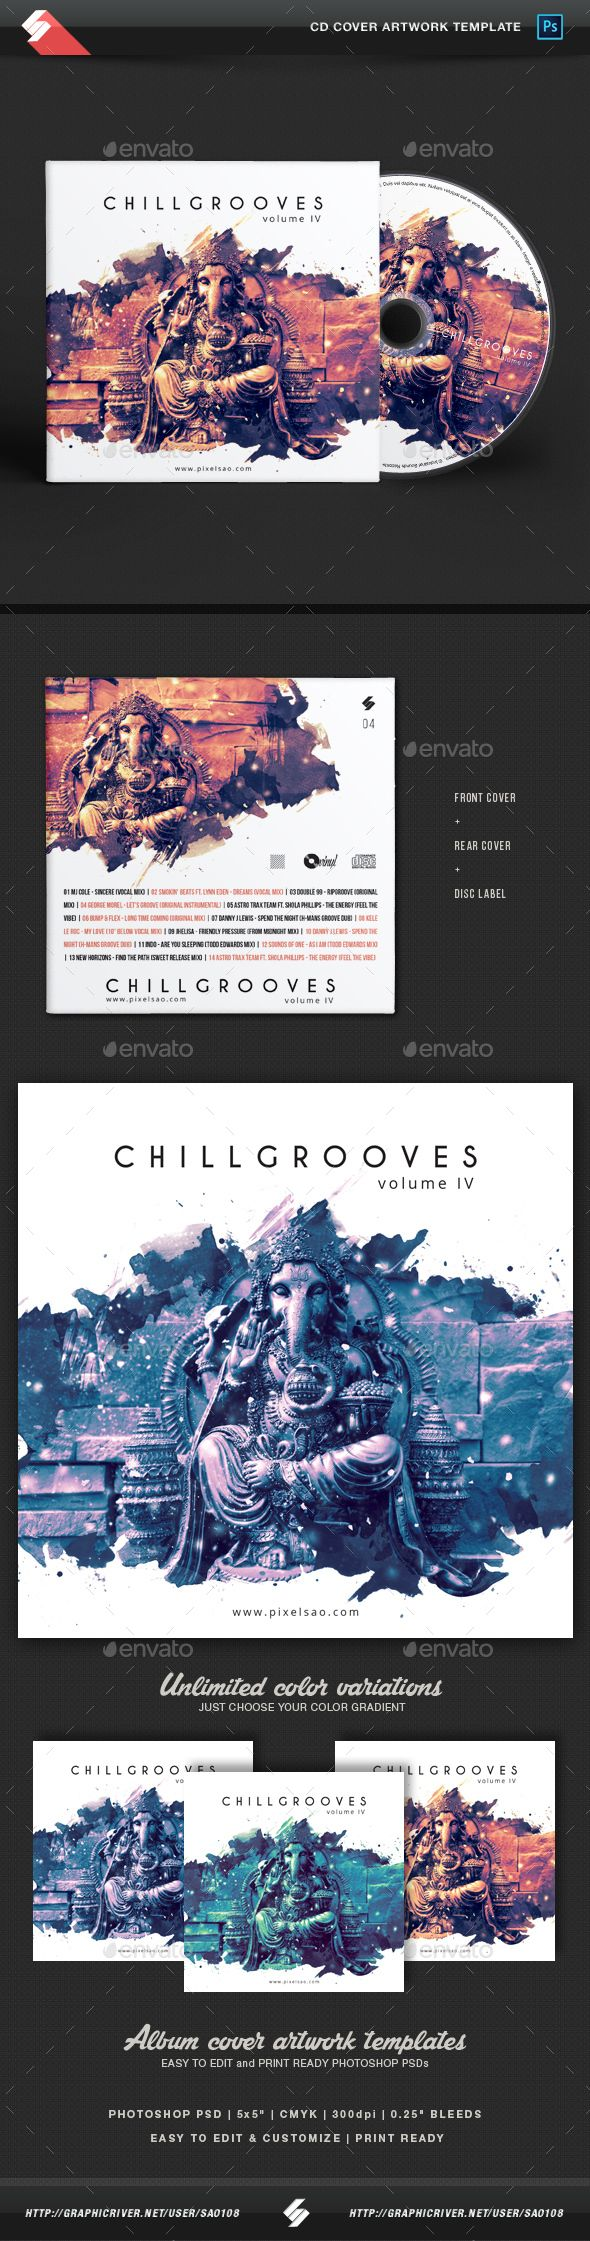 Chill Grooves Vol.4   Chillout CD Cover Artwork Template